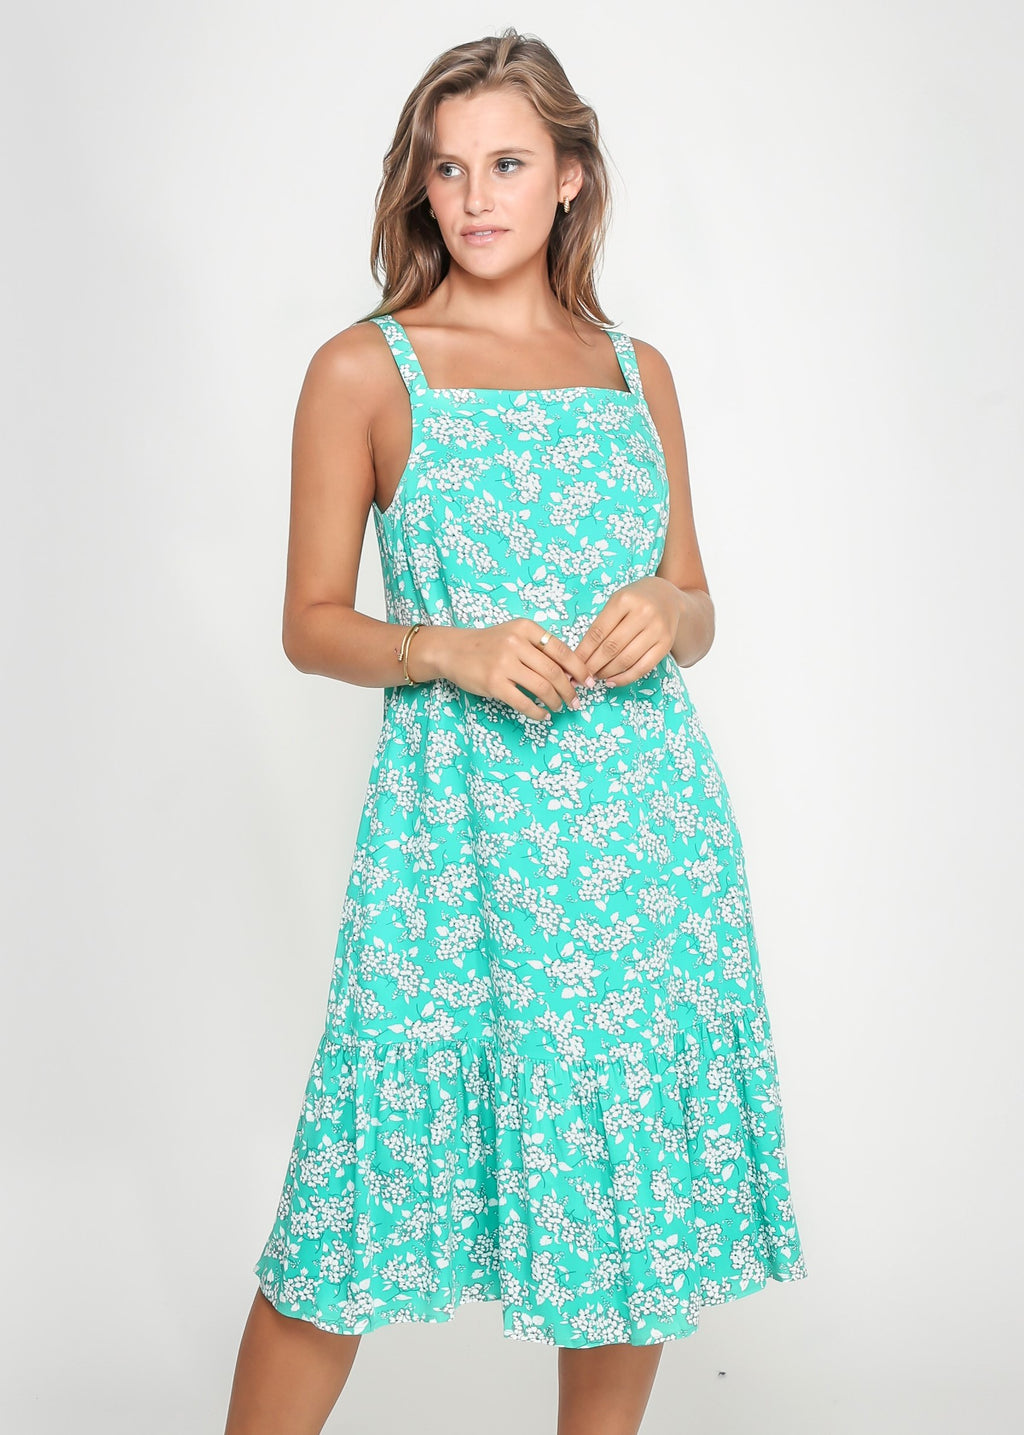 CLAIRE STRAP DRESS - GREEN FLORAL